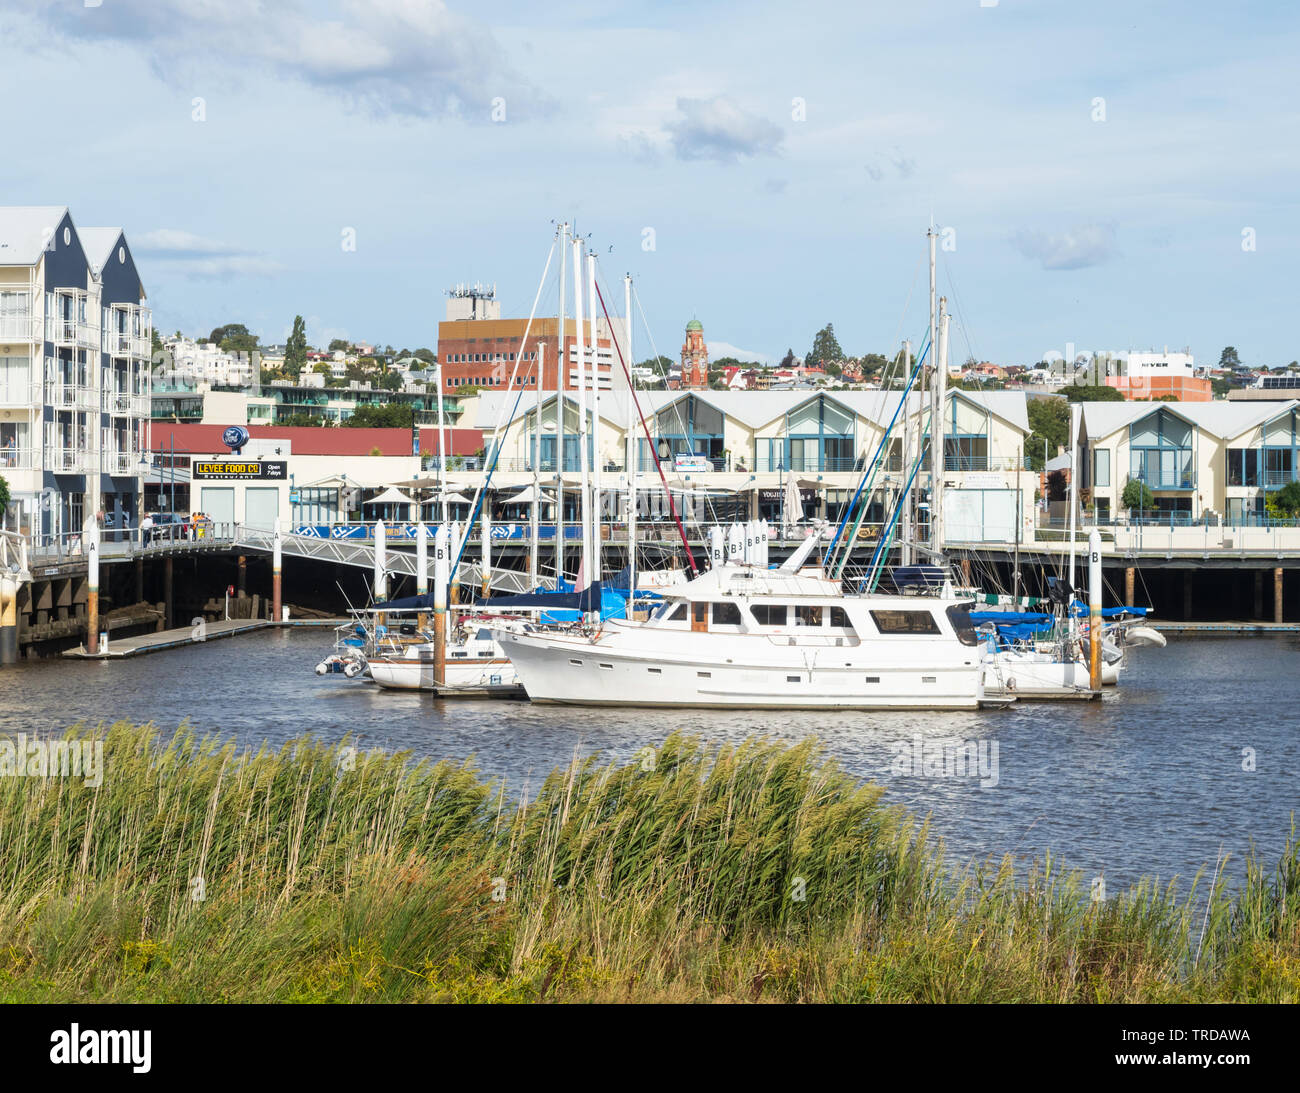 TASMANIA, AUSTRALIA - FEBRUARY 15, 2019: Pleasure craft moored in the North Esk River at Launceston Seaport in Tasmania, Australia. Stock Photo